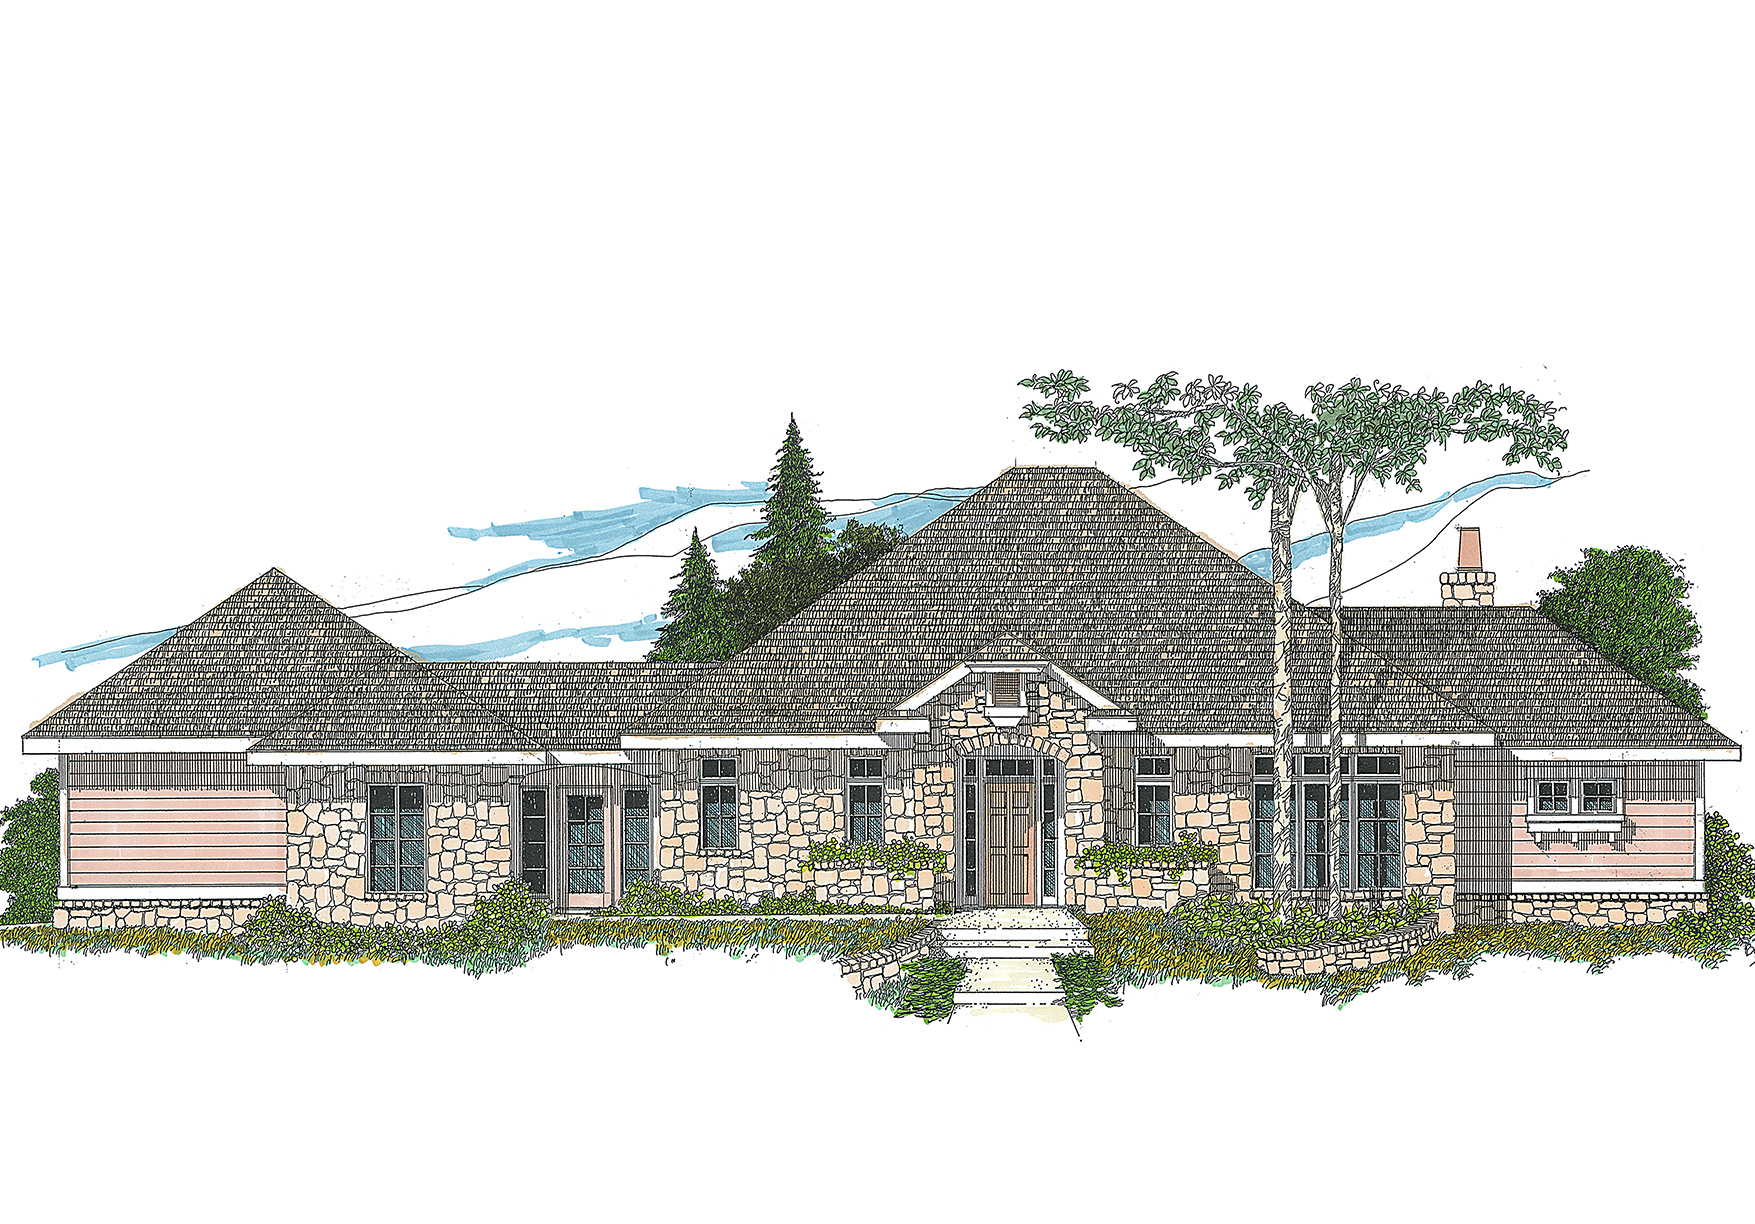 One level hill country home plan 12508rs architectural for Hill country home plans